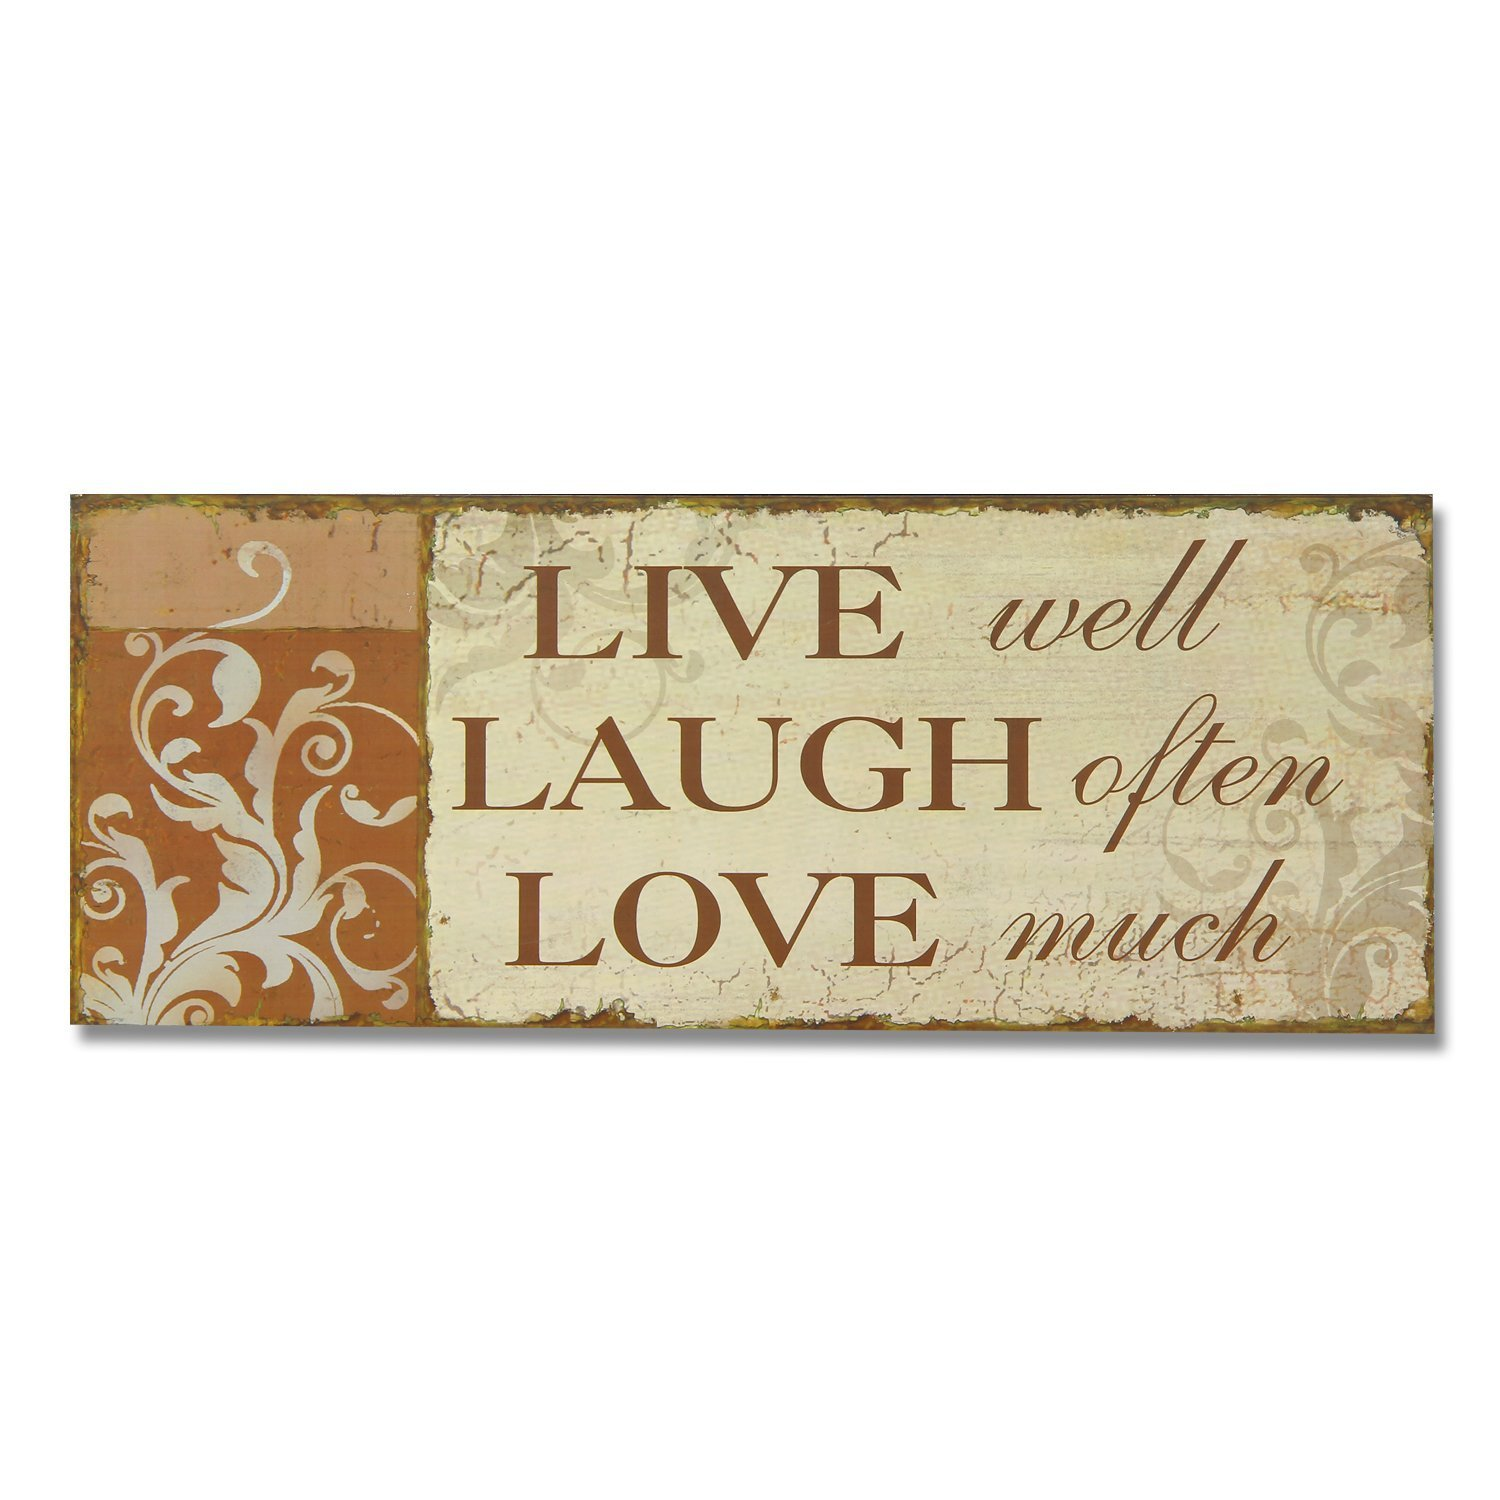 Amazon adeco sp0155 decorative wood wall hanging sign amazon adeco sp0155 decorative wood wall hanging sign plaque live laugh love orange beige home decor home kitchen amipublicfo Image collections